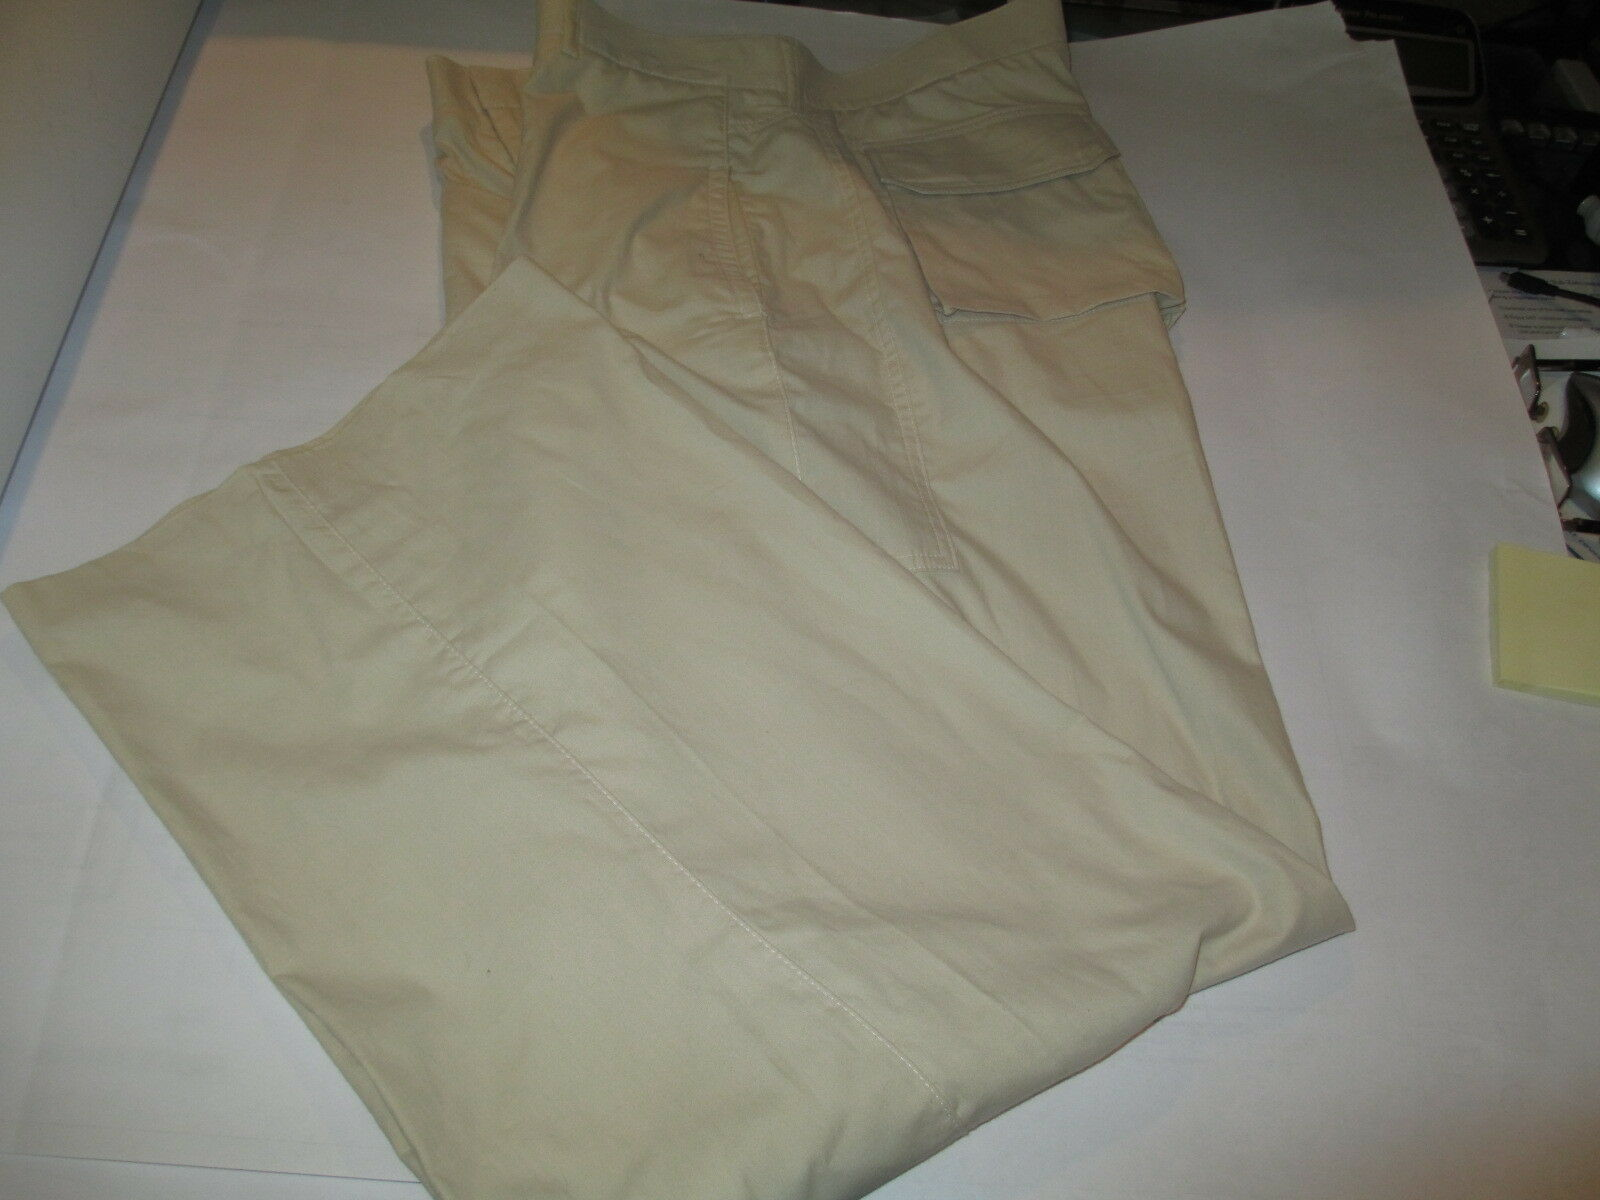 DESIGNER  NEW COTTON PANTS BY NANI BON, MADE IN ITALY. EU SIZE 58. STUNNING